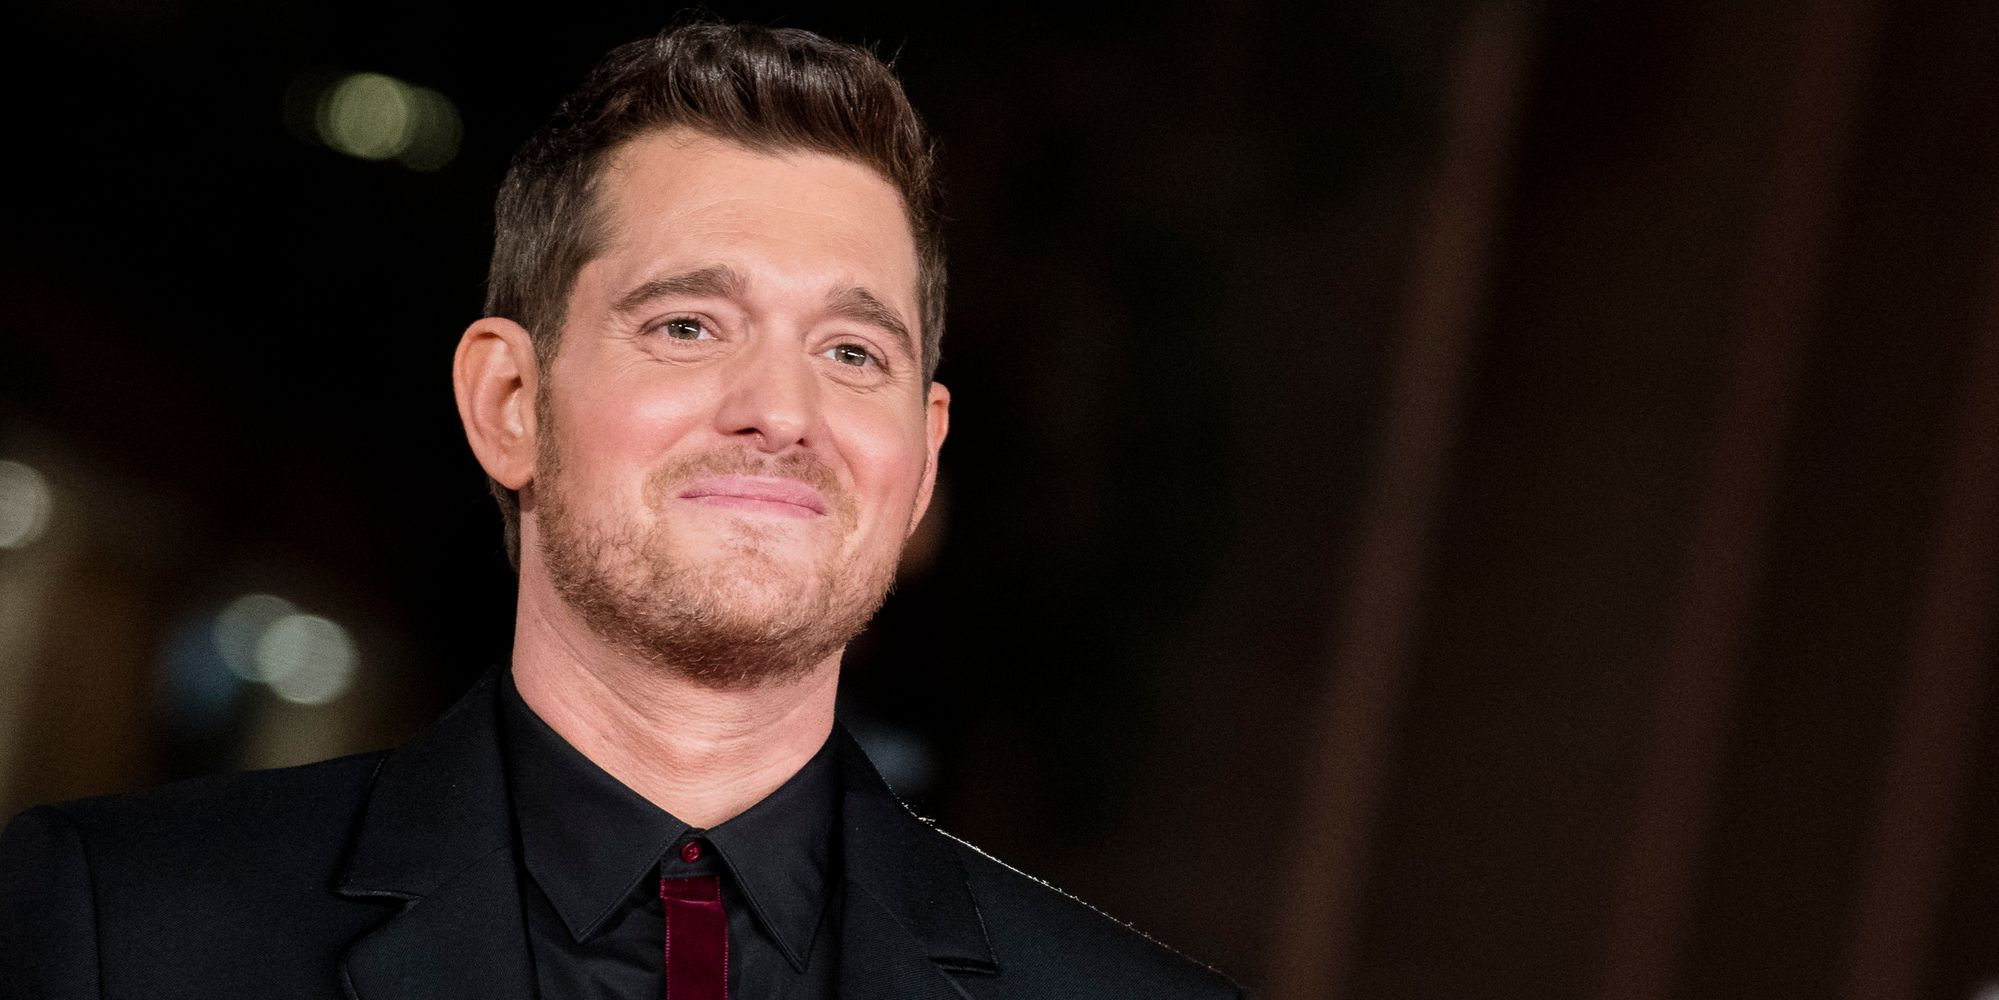 Michael Bublé Takes A Break From Singing After Son